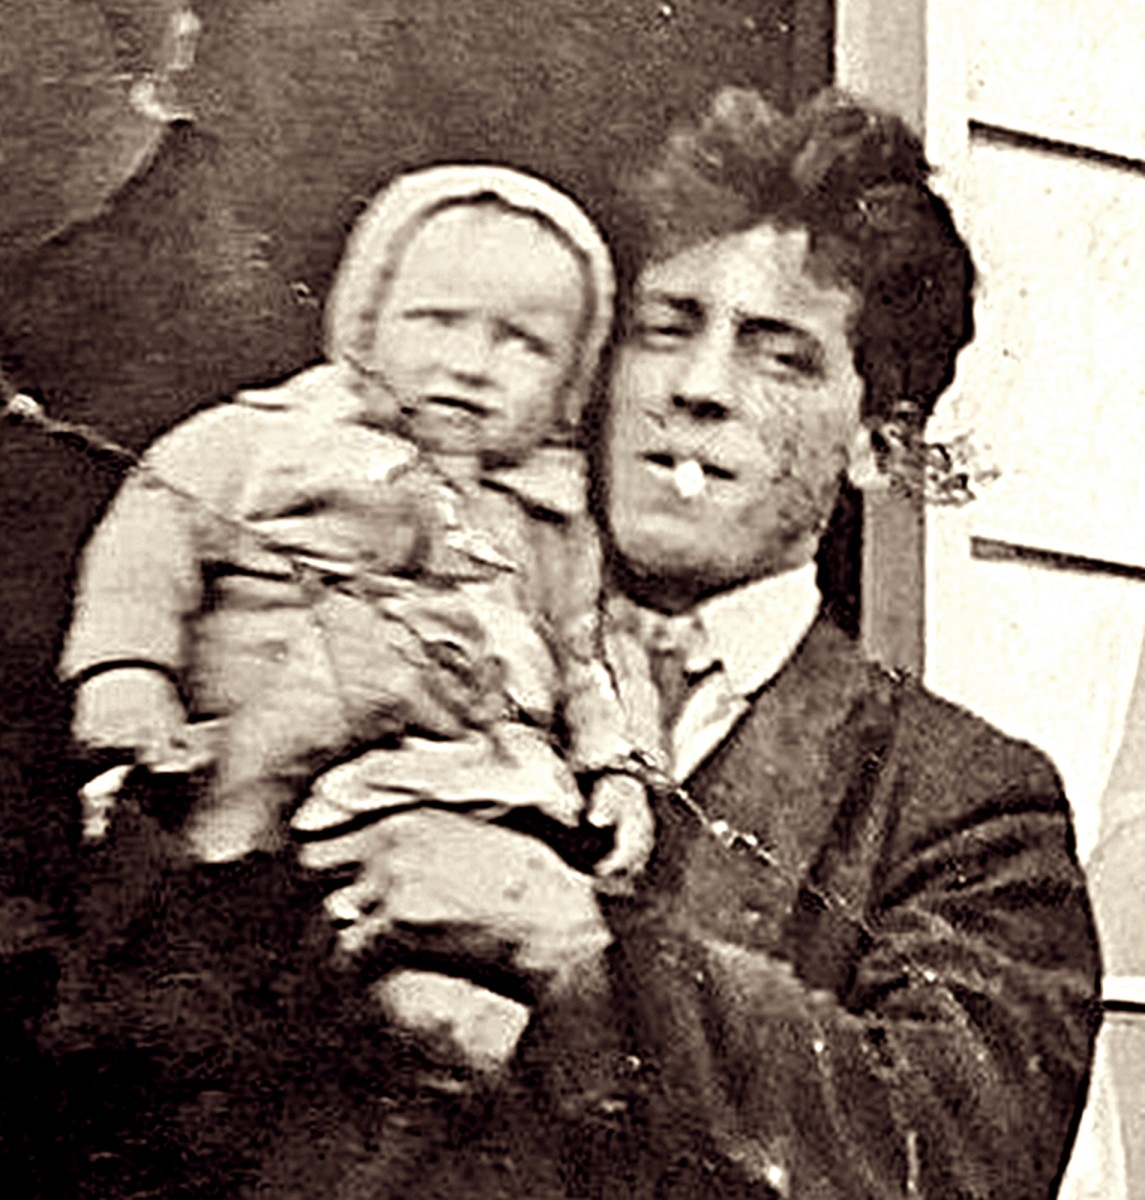 Grandad pictured with mum as a baby